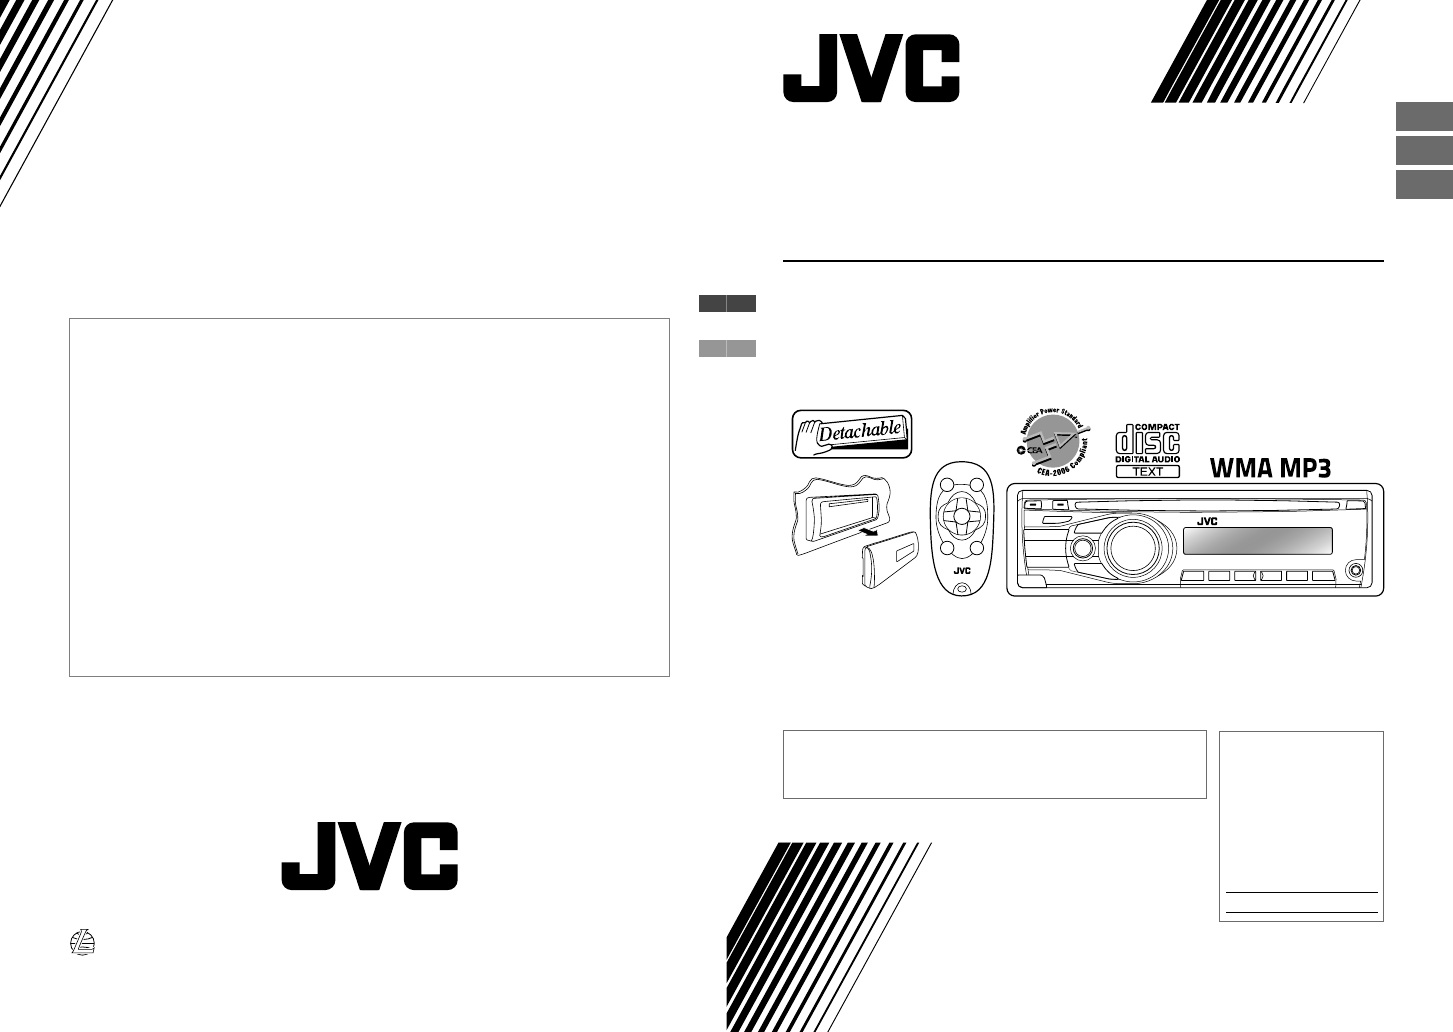 JVC Car Stereo System KD-R320 User Guide | ManualsOnline.com Jvc Kd R Wiring Diagram on jvc wiring diagram jeep, radio wiring harness diagram, jvc cd player wiring-diagram, car radio wiring diagram, jvc kd r520 wiring-diagram, stereo wiring diagram, jvc car wiring, jvc kd s28 wiring-diagram,